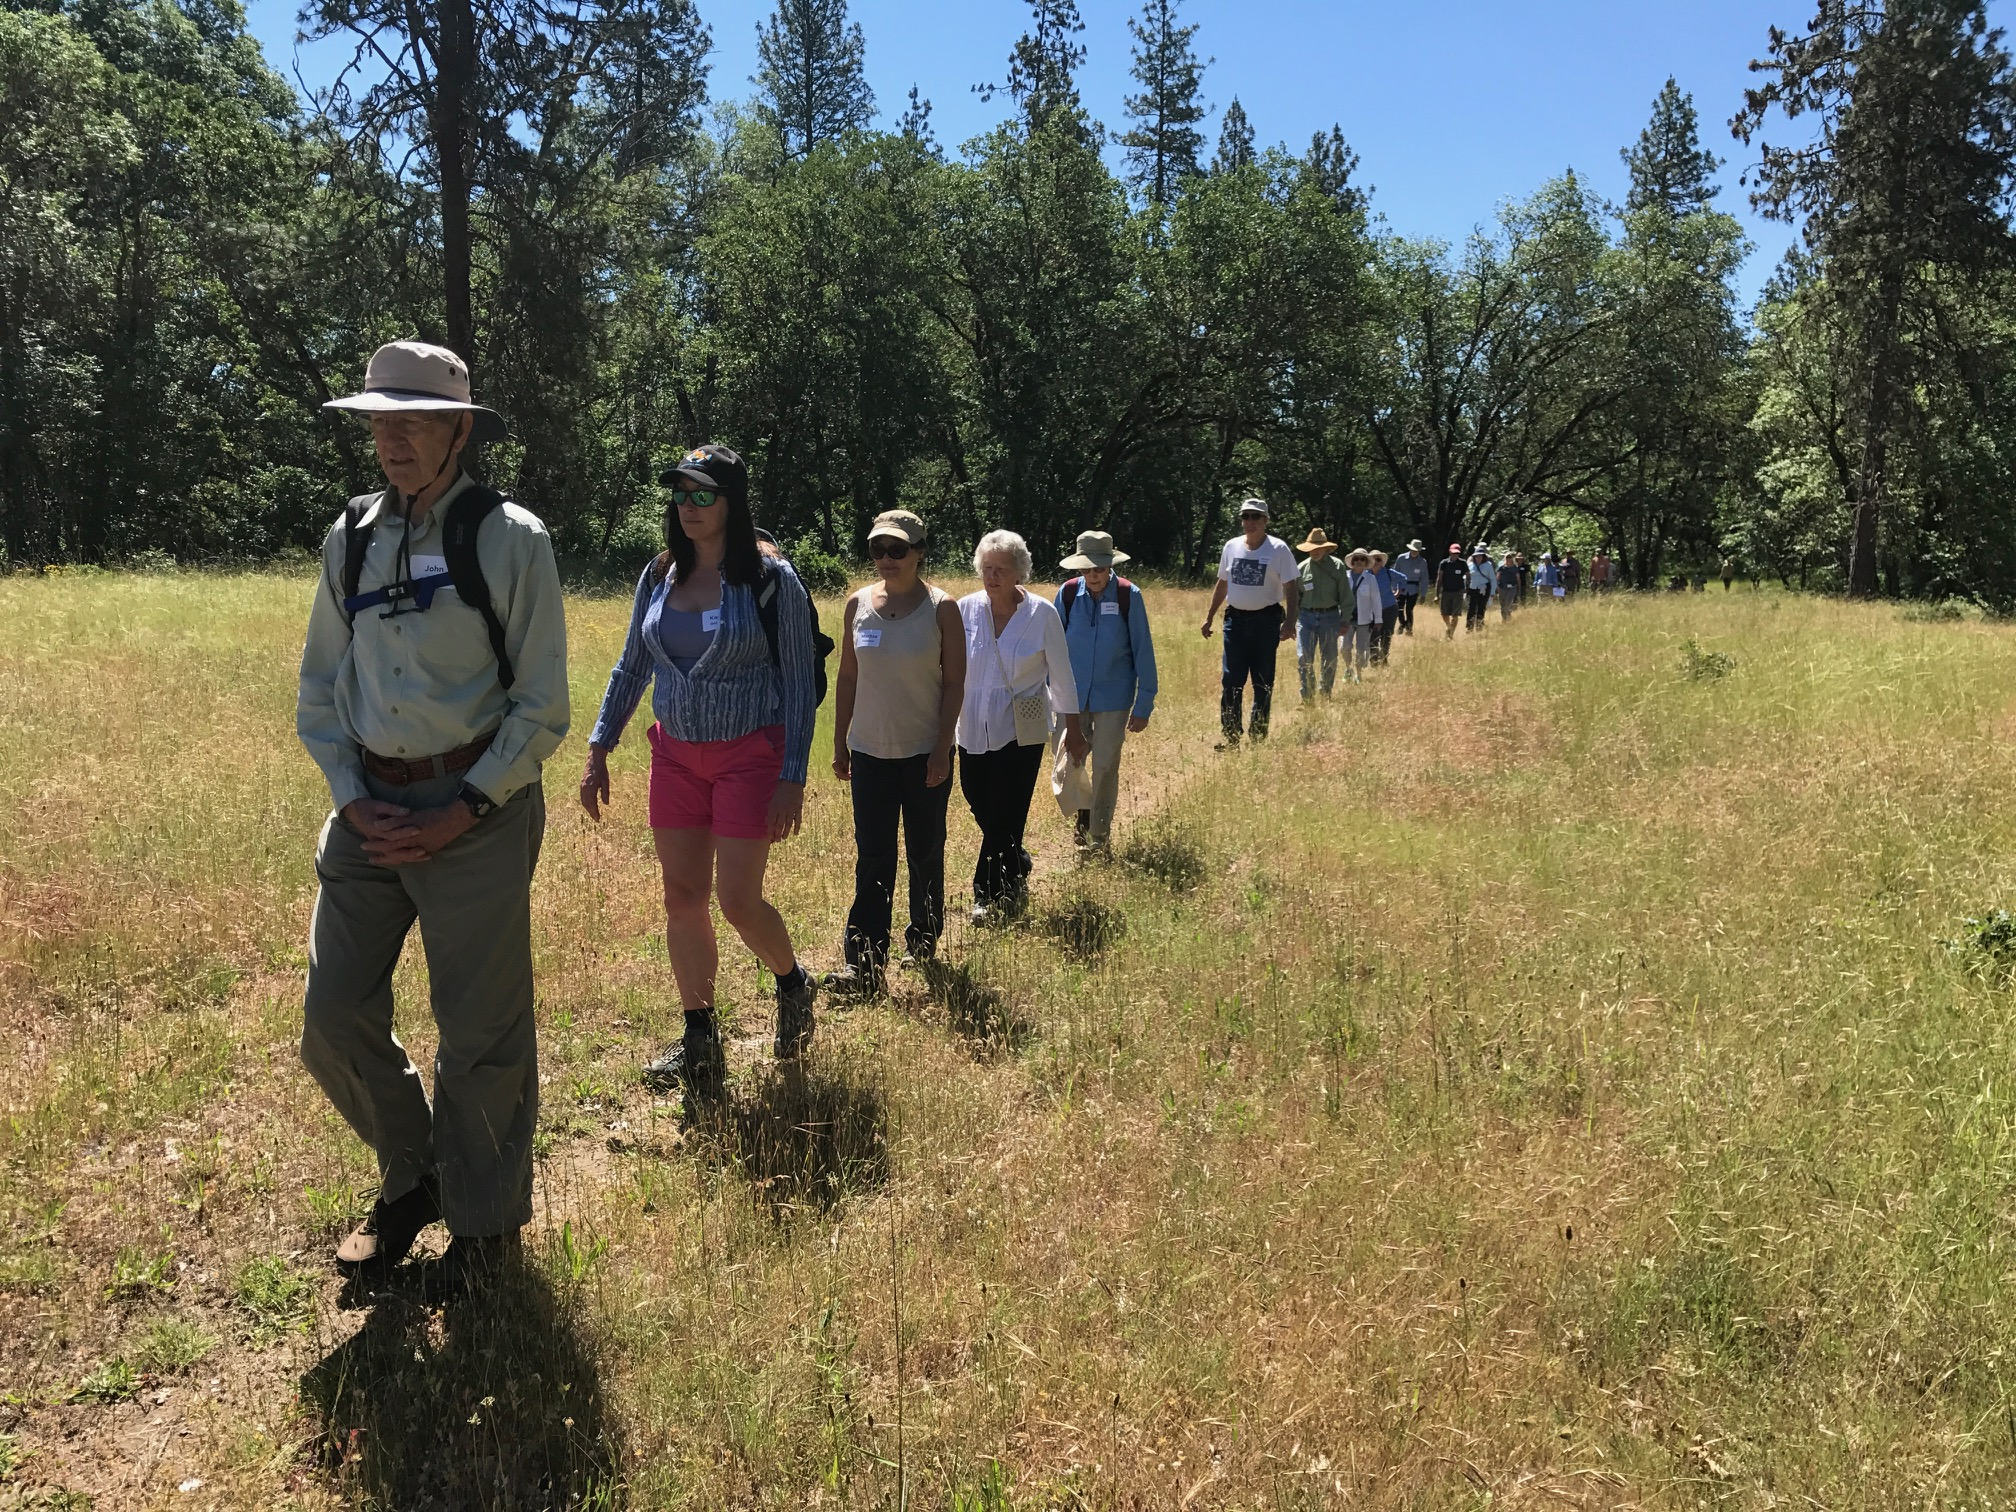 2017AnnPicnic_KH_iPhone (1)LineOfHikers.JPG